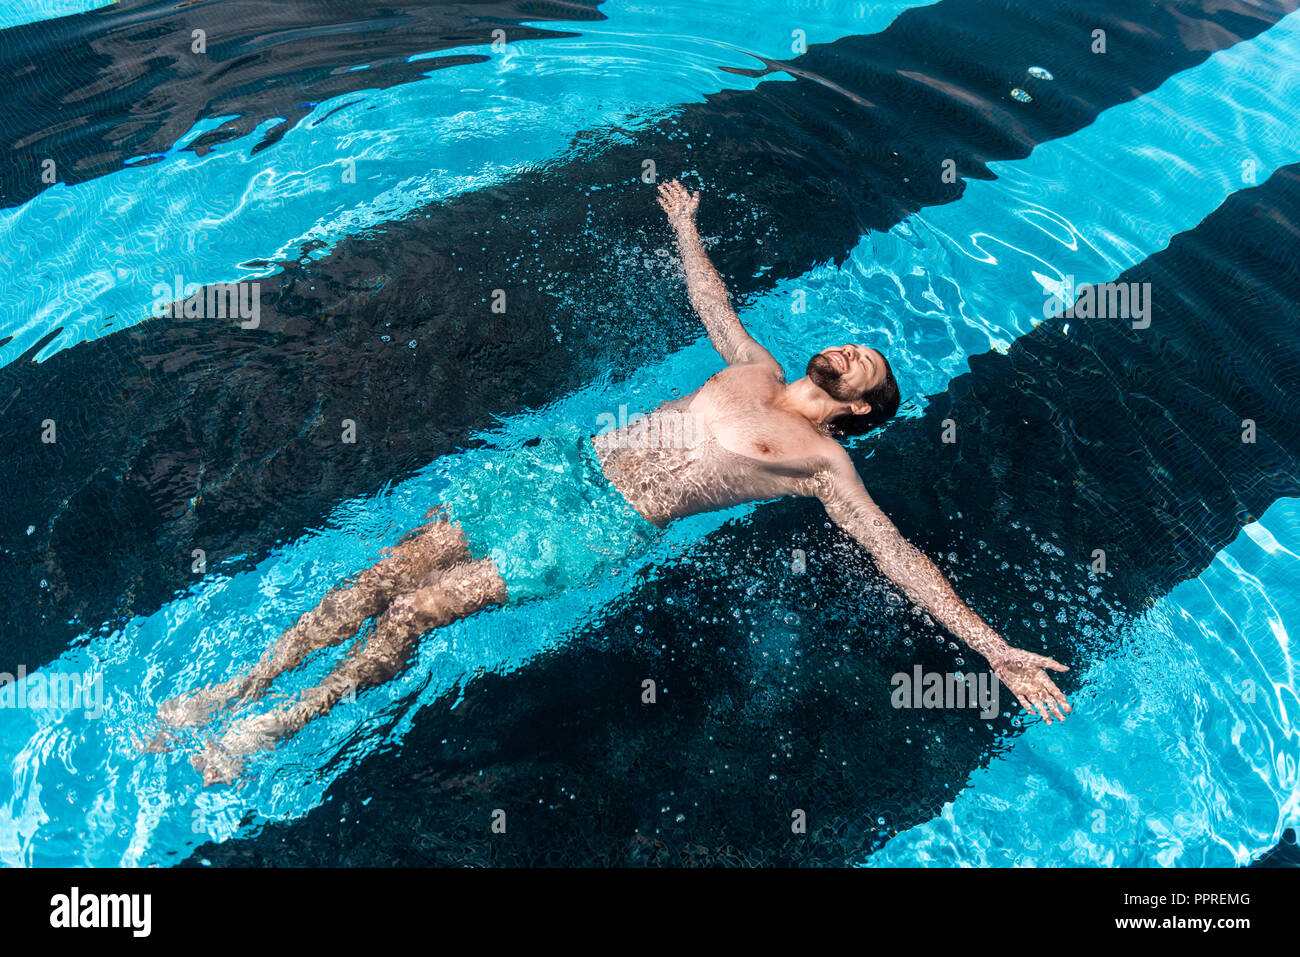 Homme barbu floating in swimming pool Photo Stock